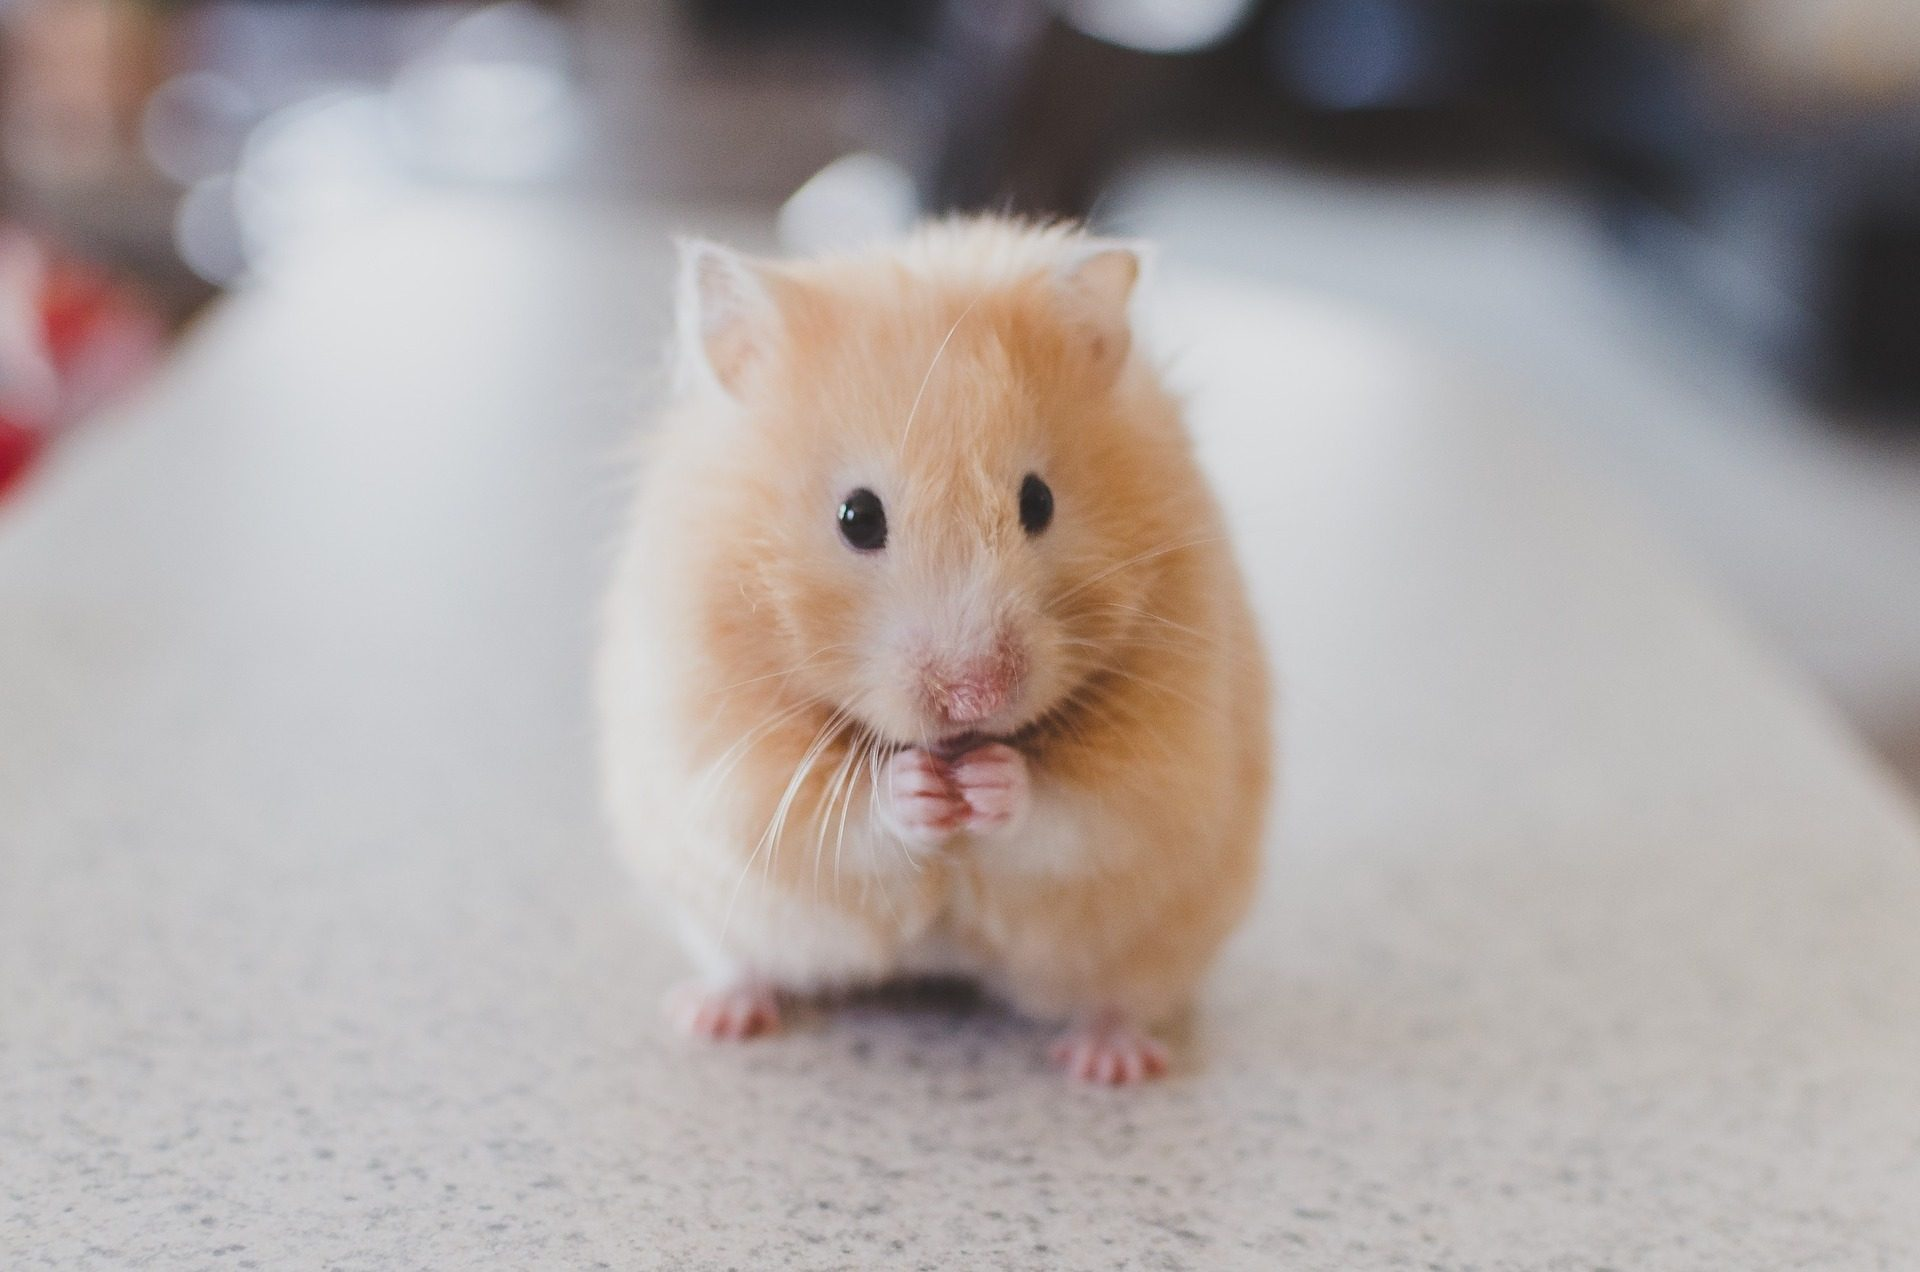 PA student forced to flush hamster down toilet [watch]